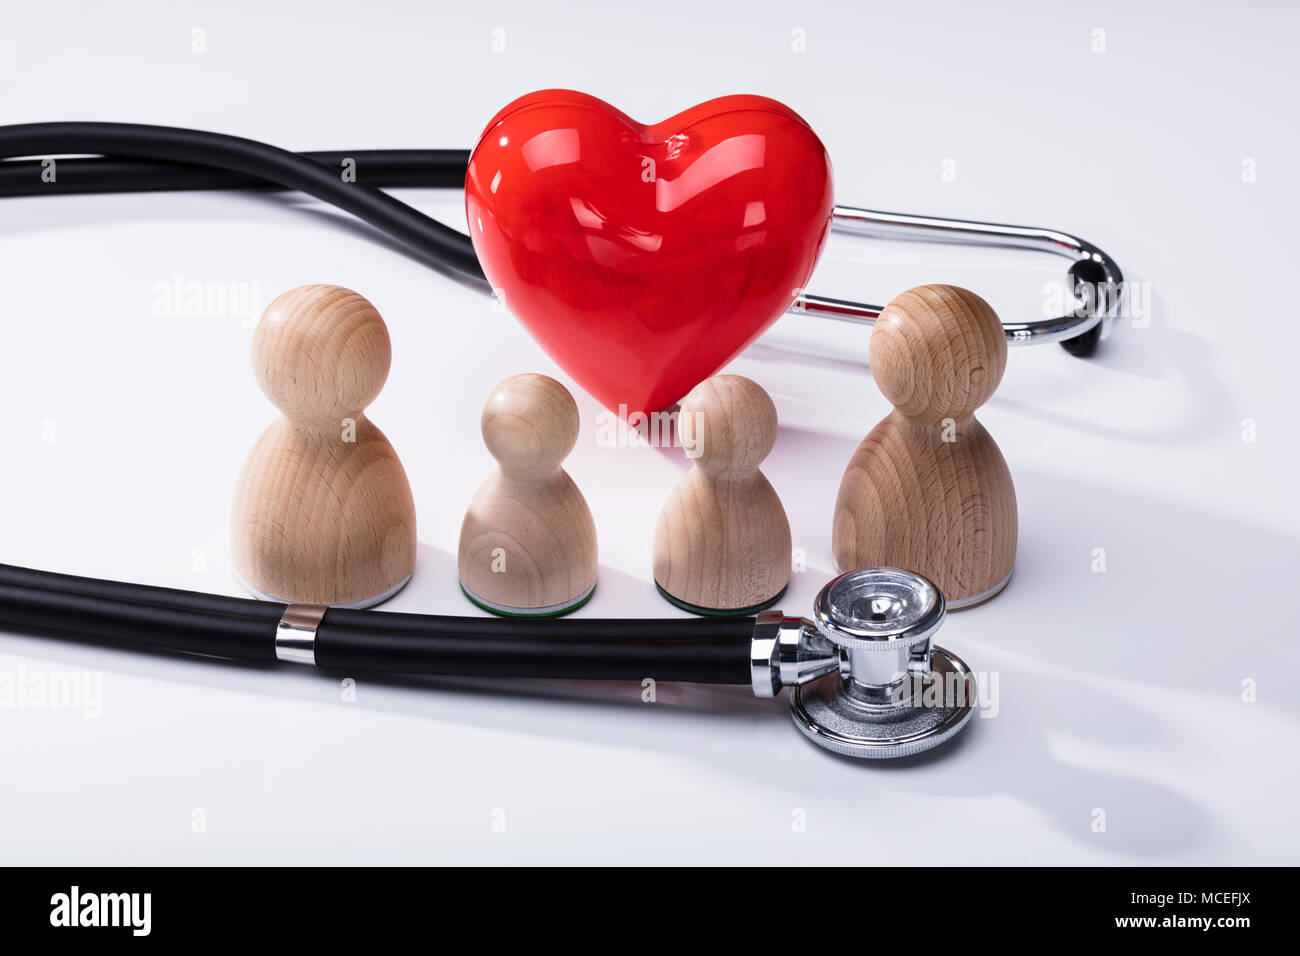 Close-up Of Wooden Pawns, Red Heart Shape And Stethoscope On White Background - Stock Image